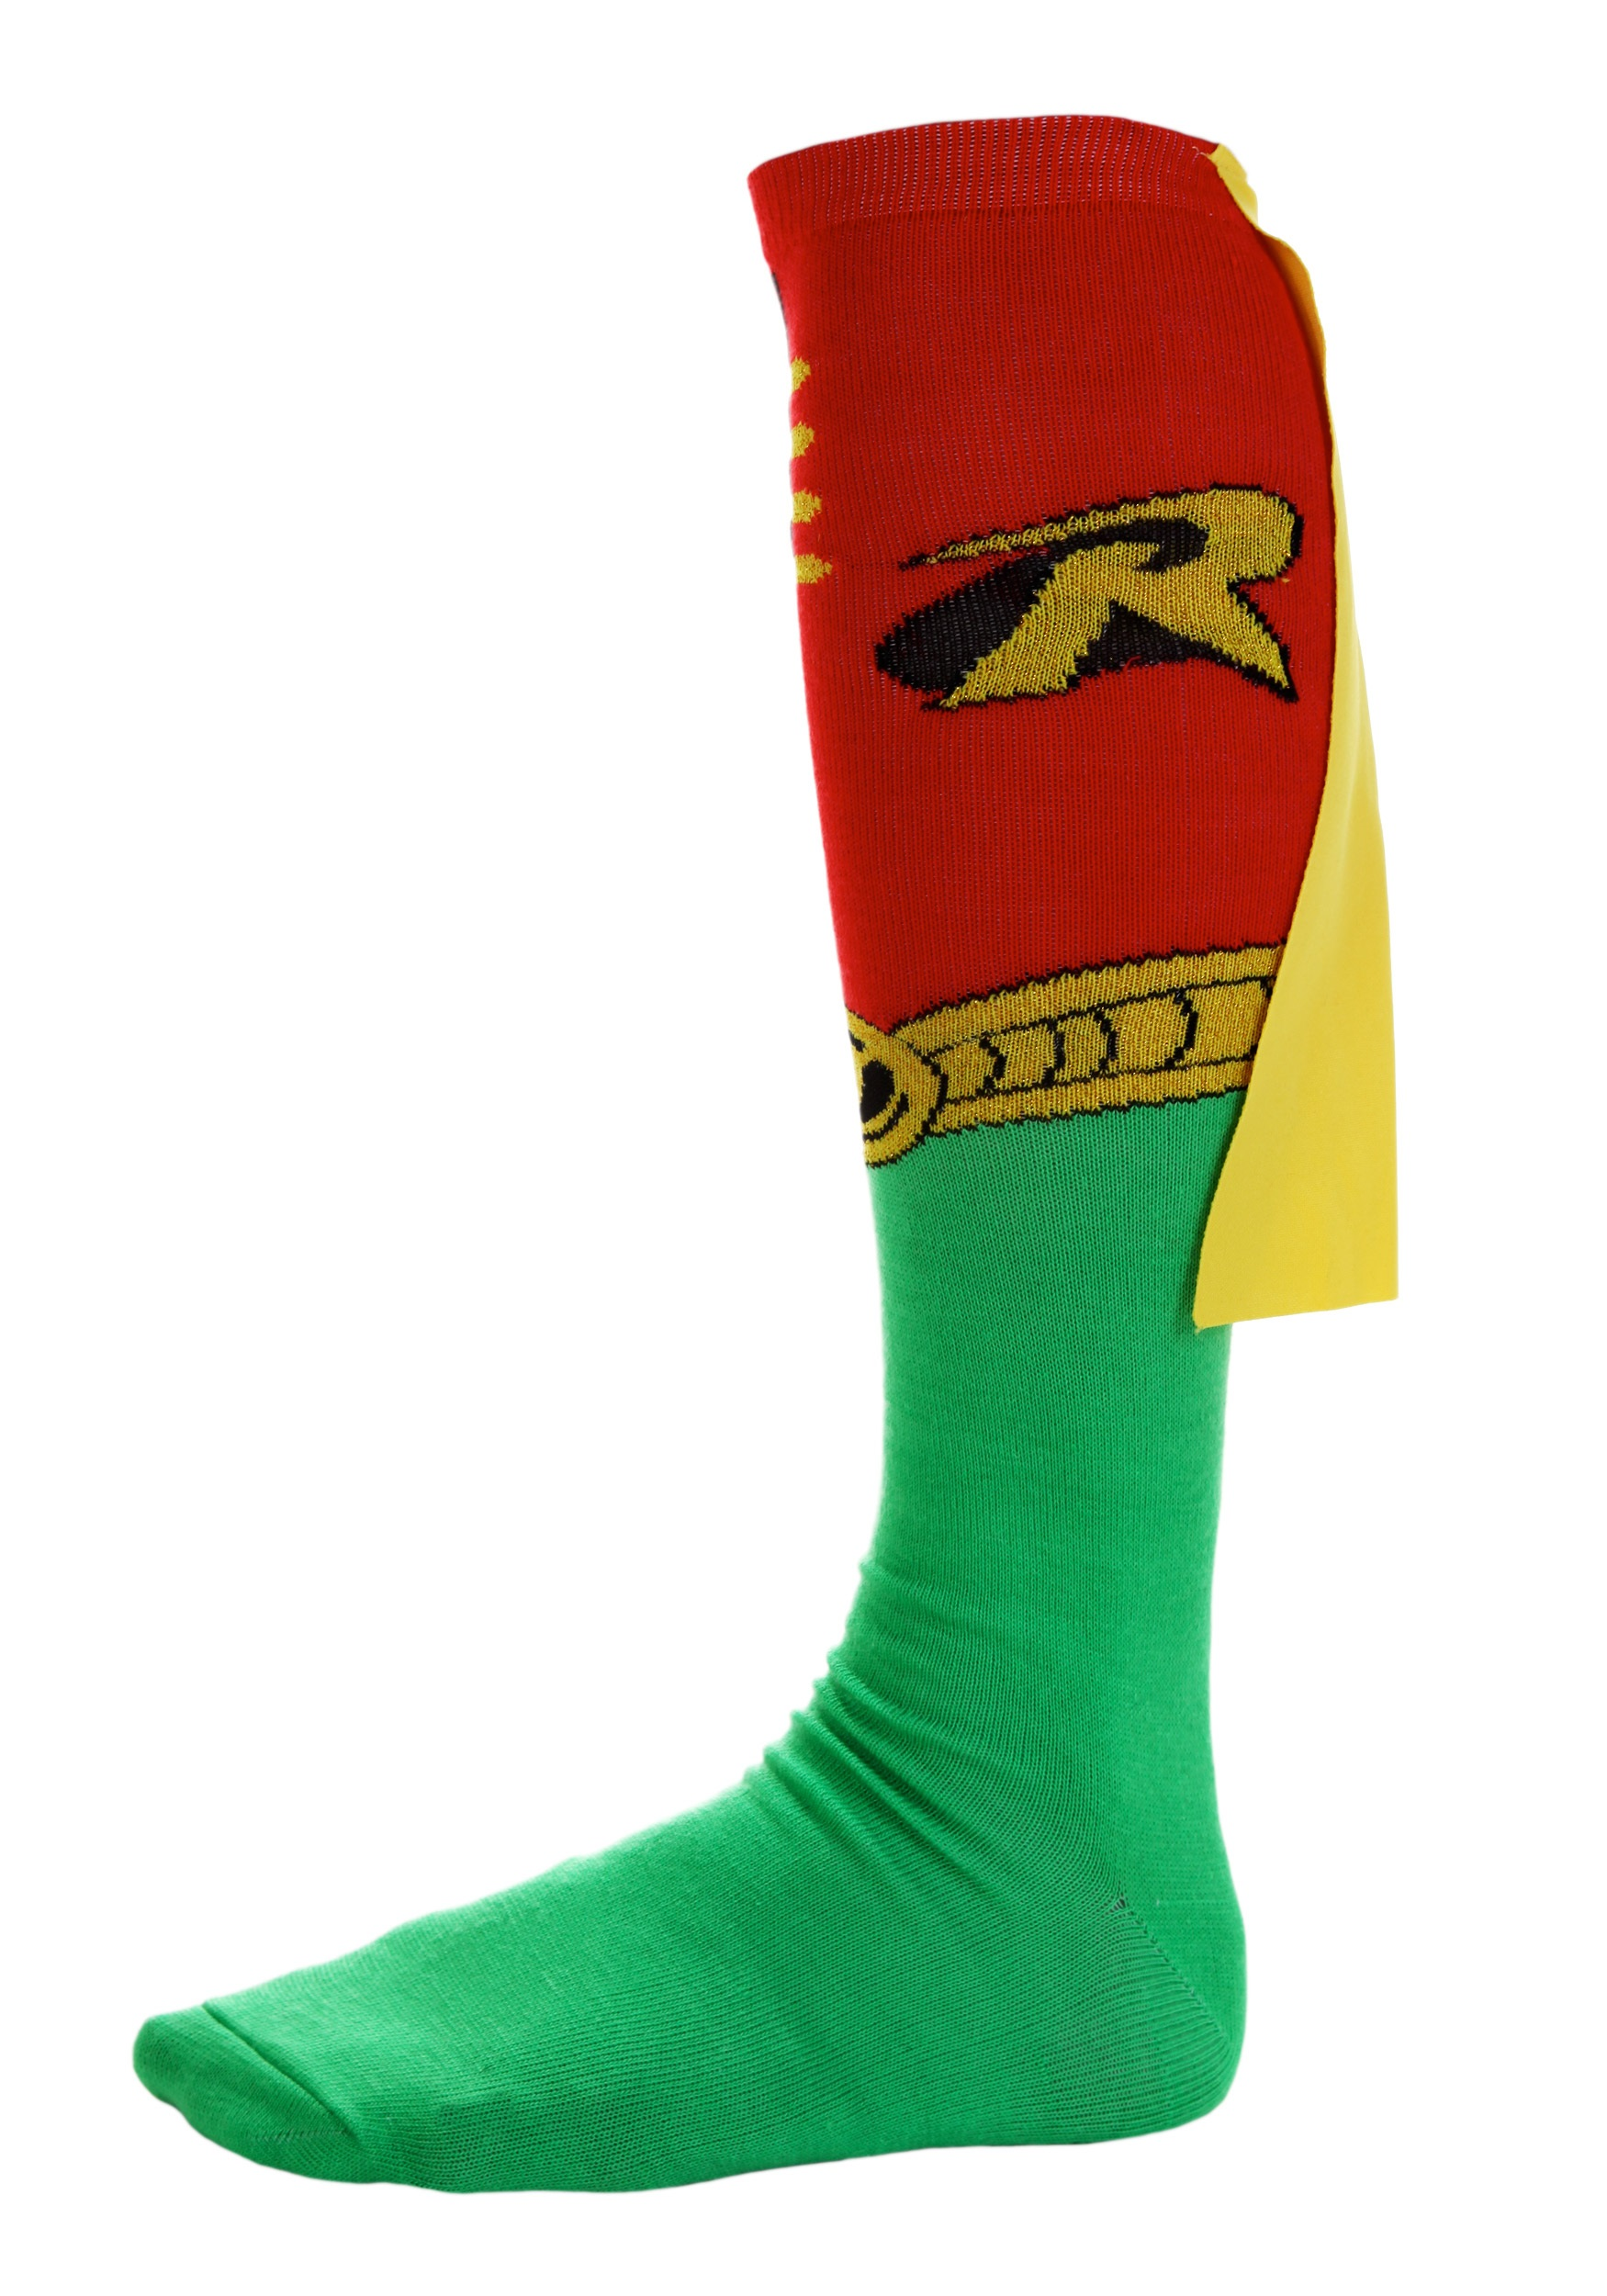 f4de8a1c560 Robin Knee-High Cape Socks - Adult Robin Costume Accessory